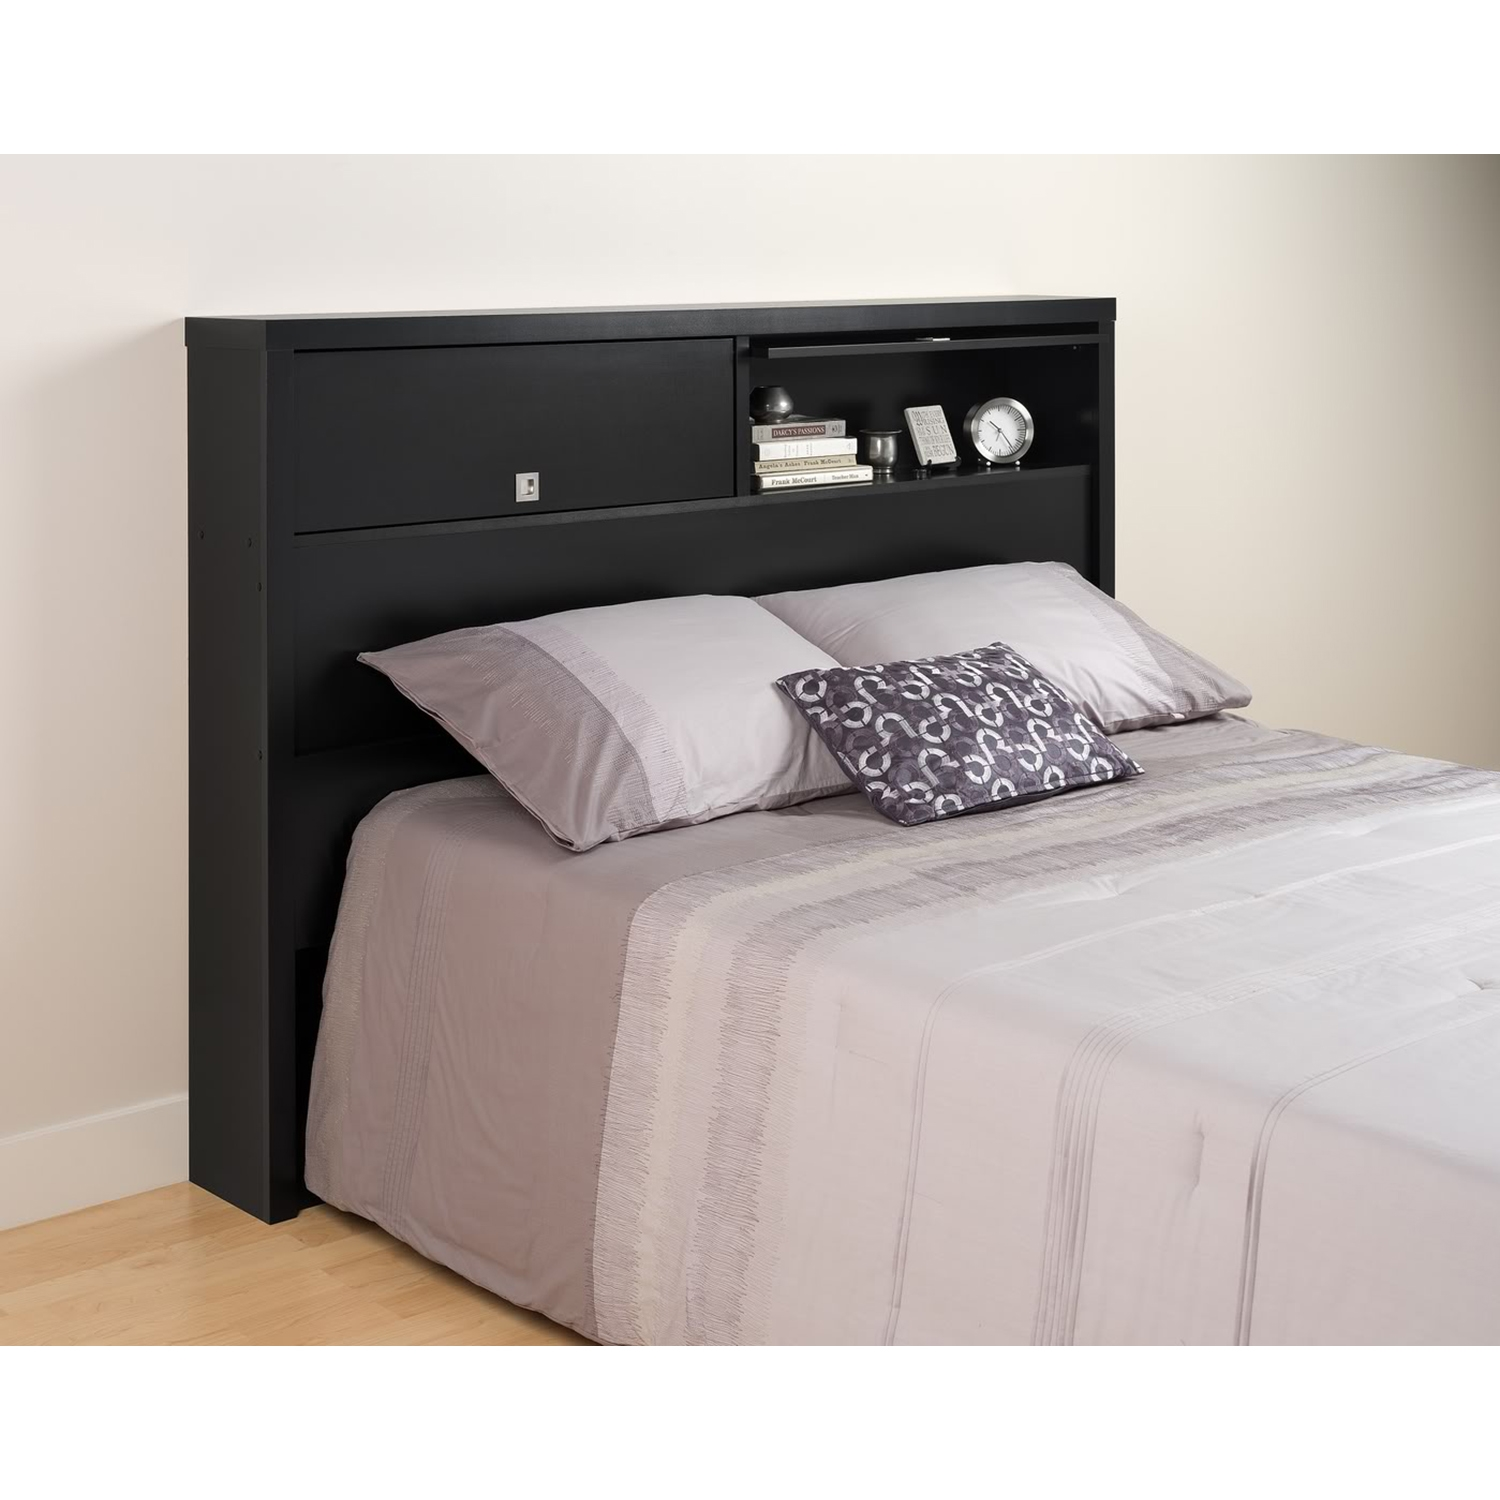 Series 9 Designer Full/Queen 2-Door Headboard - Black - PRE-BHFX-0502-1